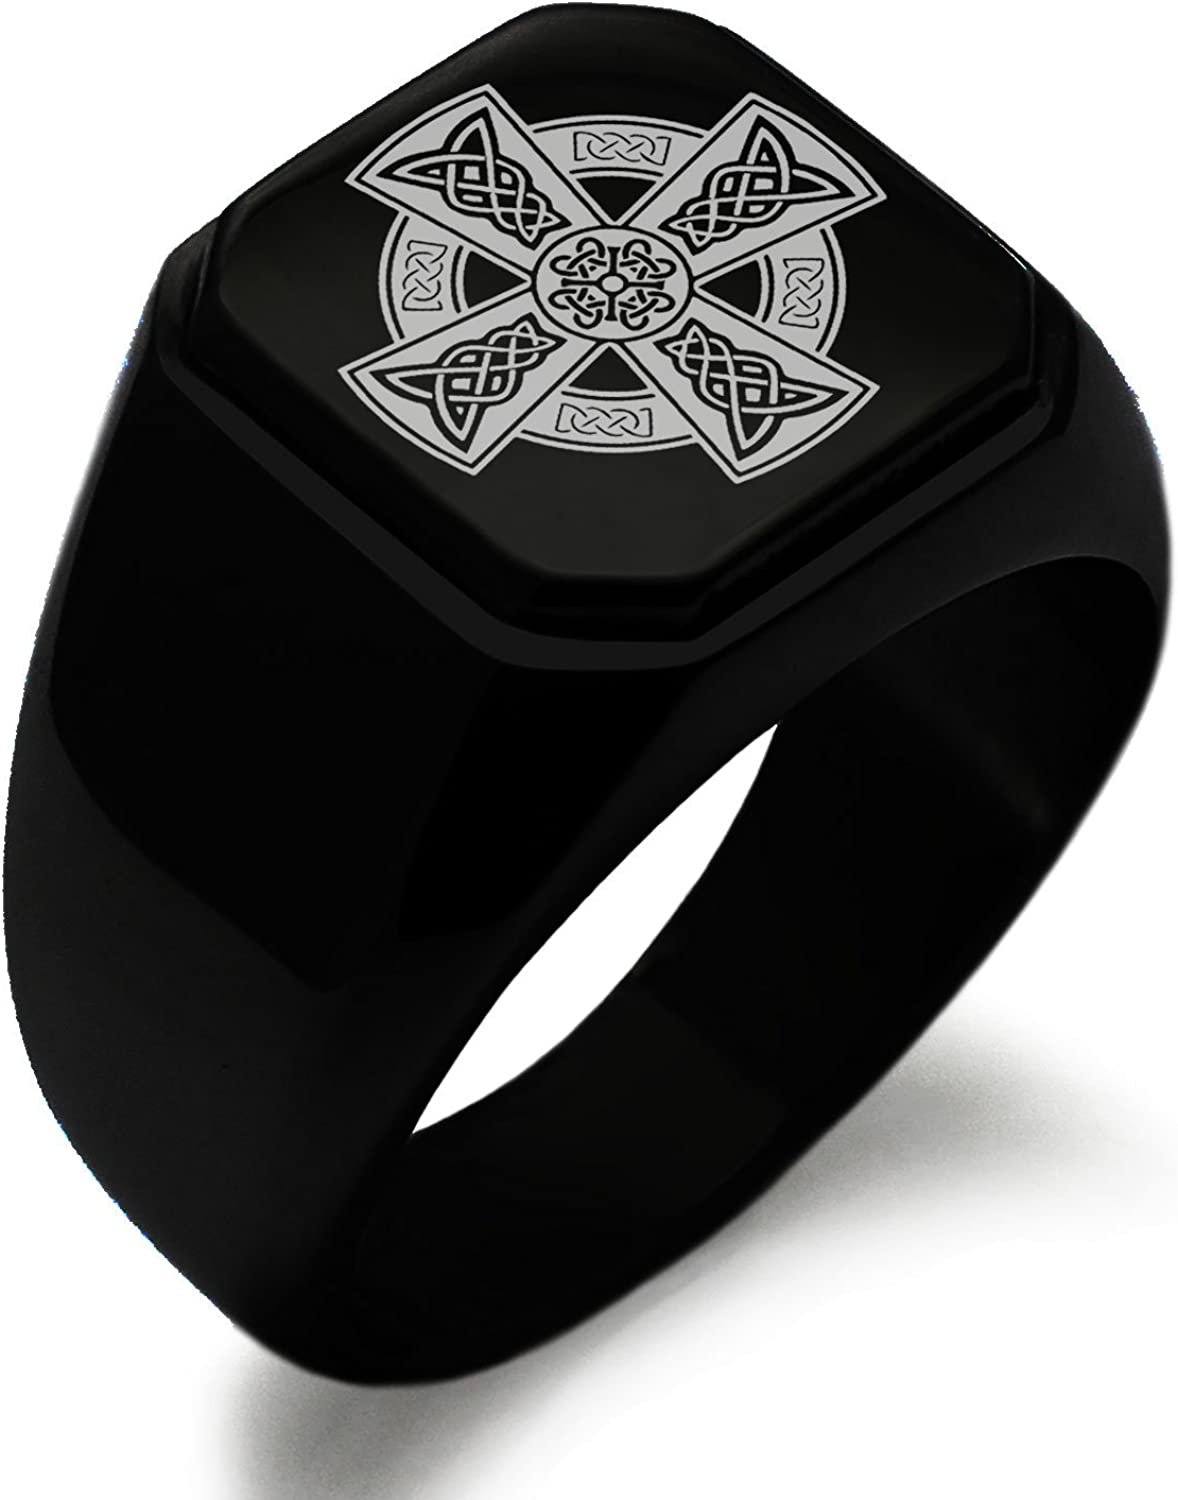 Tioneer Stainless Steel Signet Biker Rings for Men, Nordic Viking Symbol Square Flat Top (Black, Gold, Silver), Size 7-16